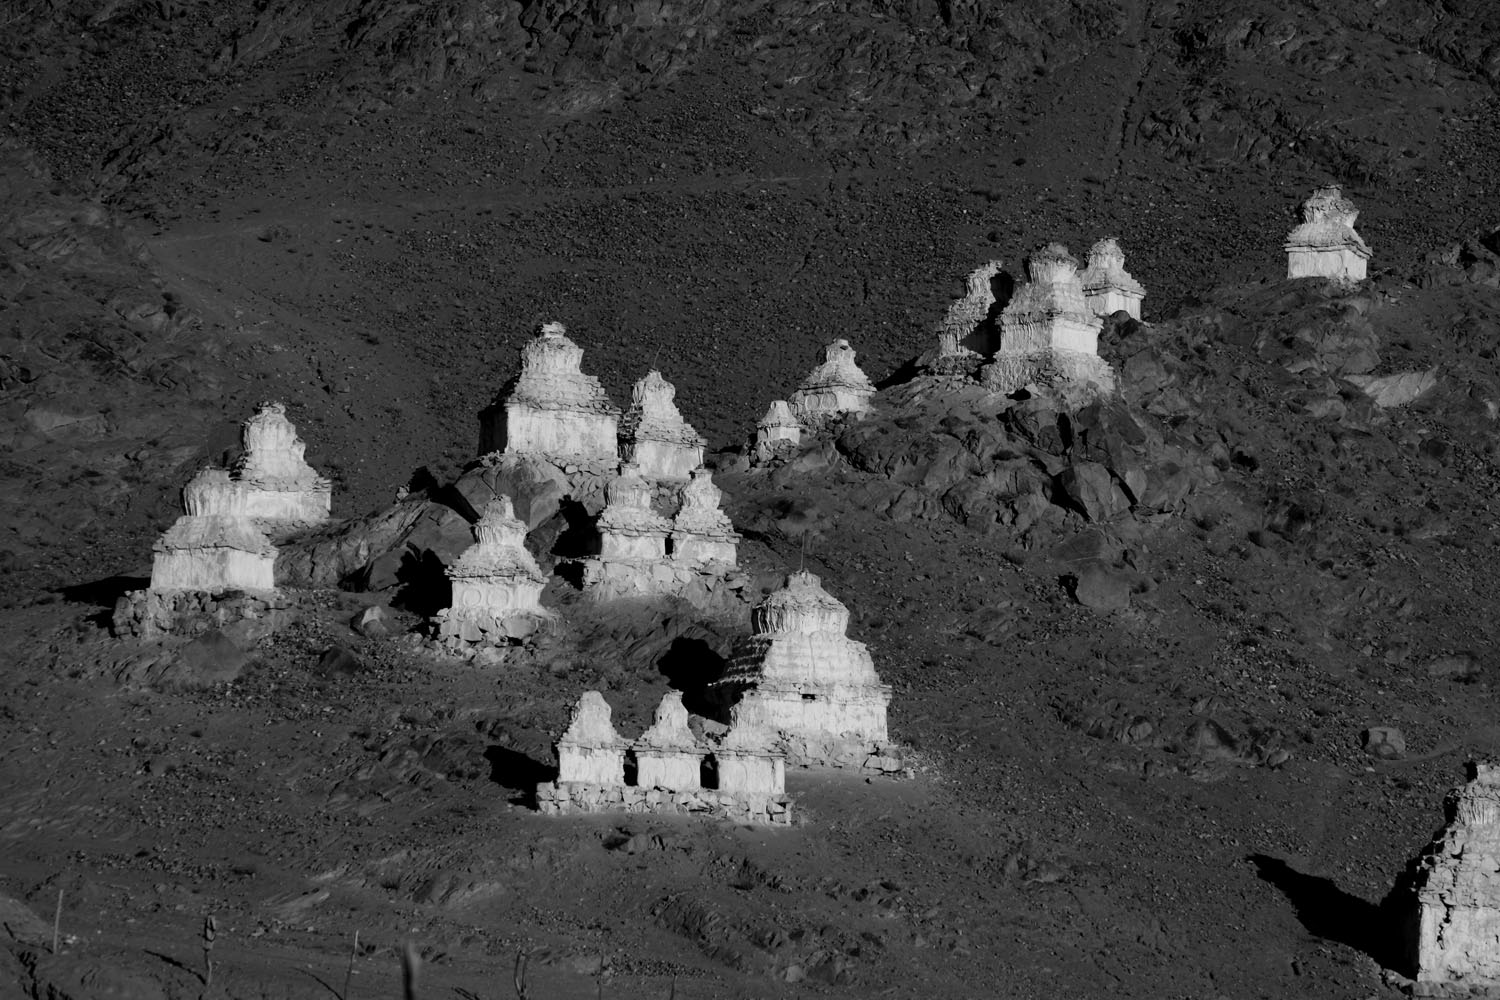 Stupa, Zanskar valley, Ladakh, India